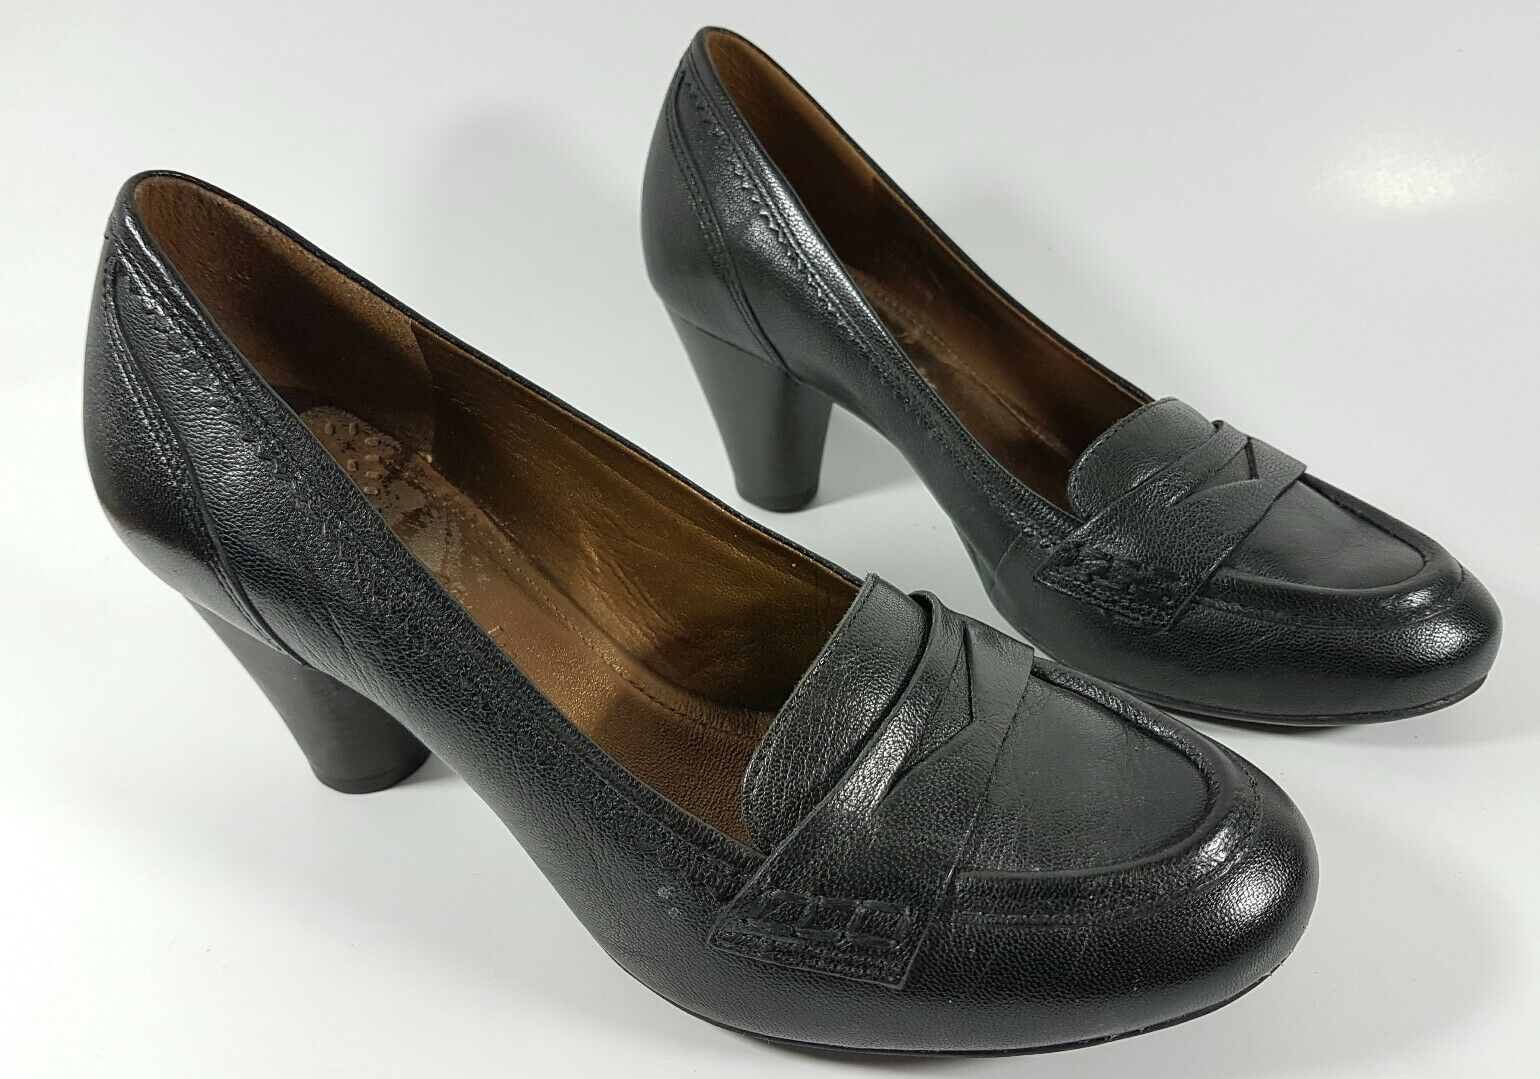 Clarks womens black leather mid heel shoes uk 5 excellent condition